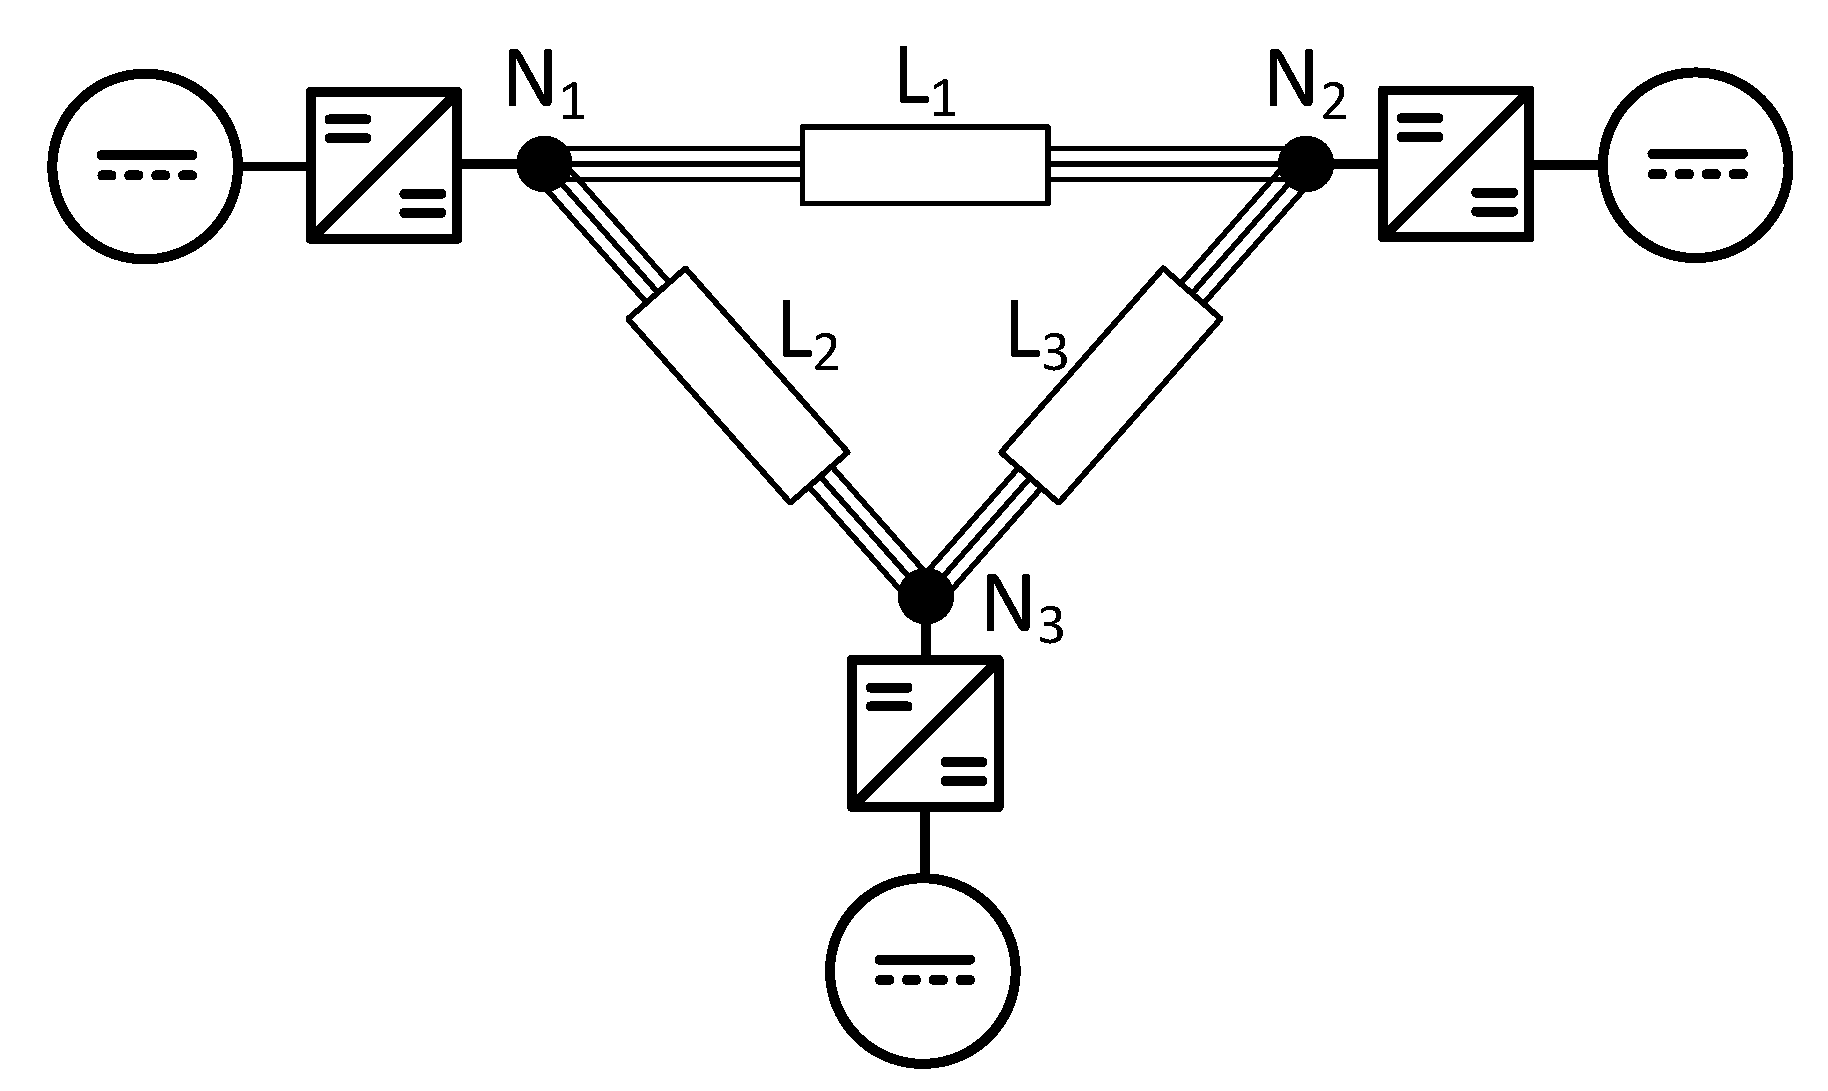 various simulations of a power amplifier